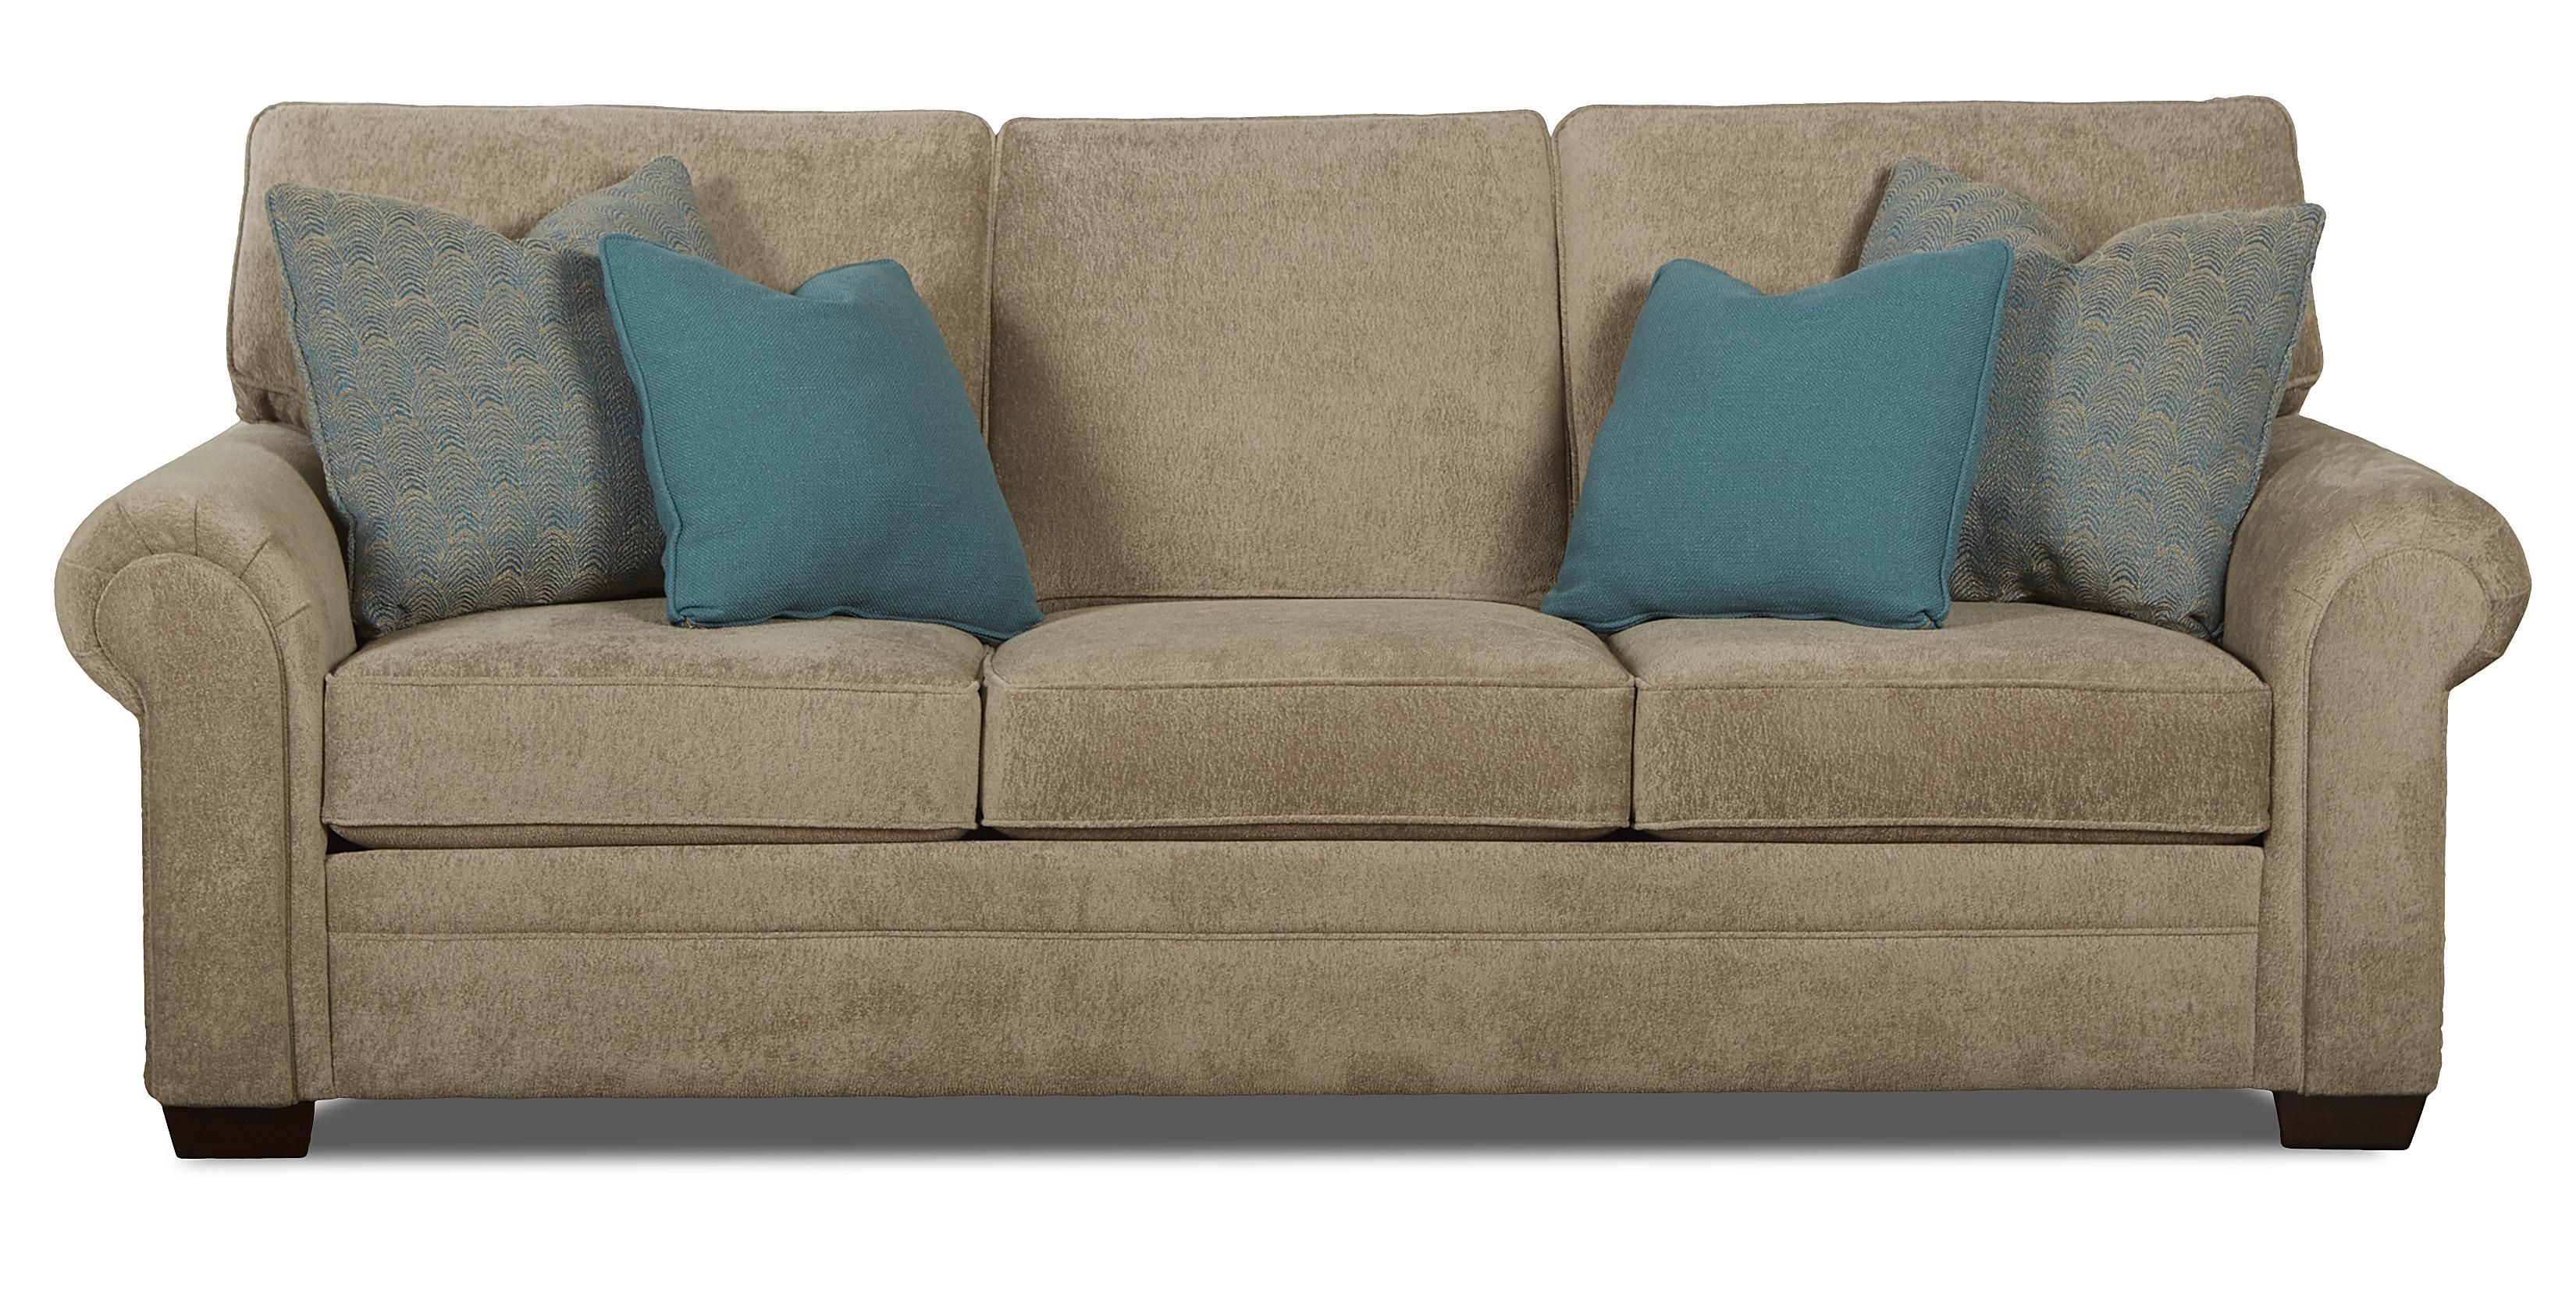 Non Traditional Sleeper Sofa